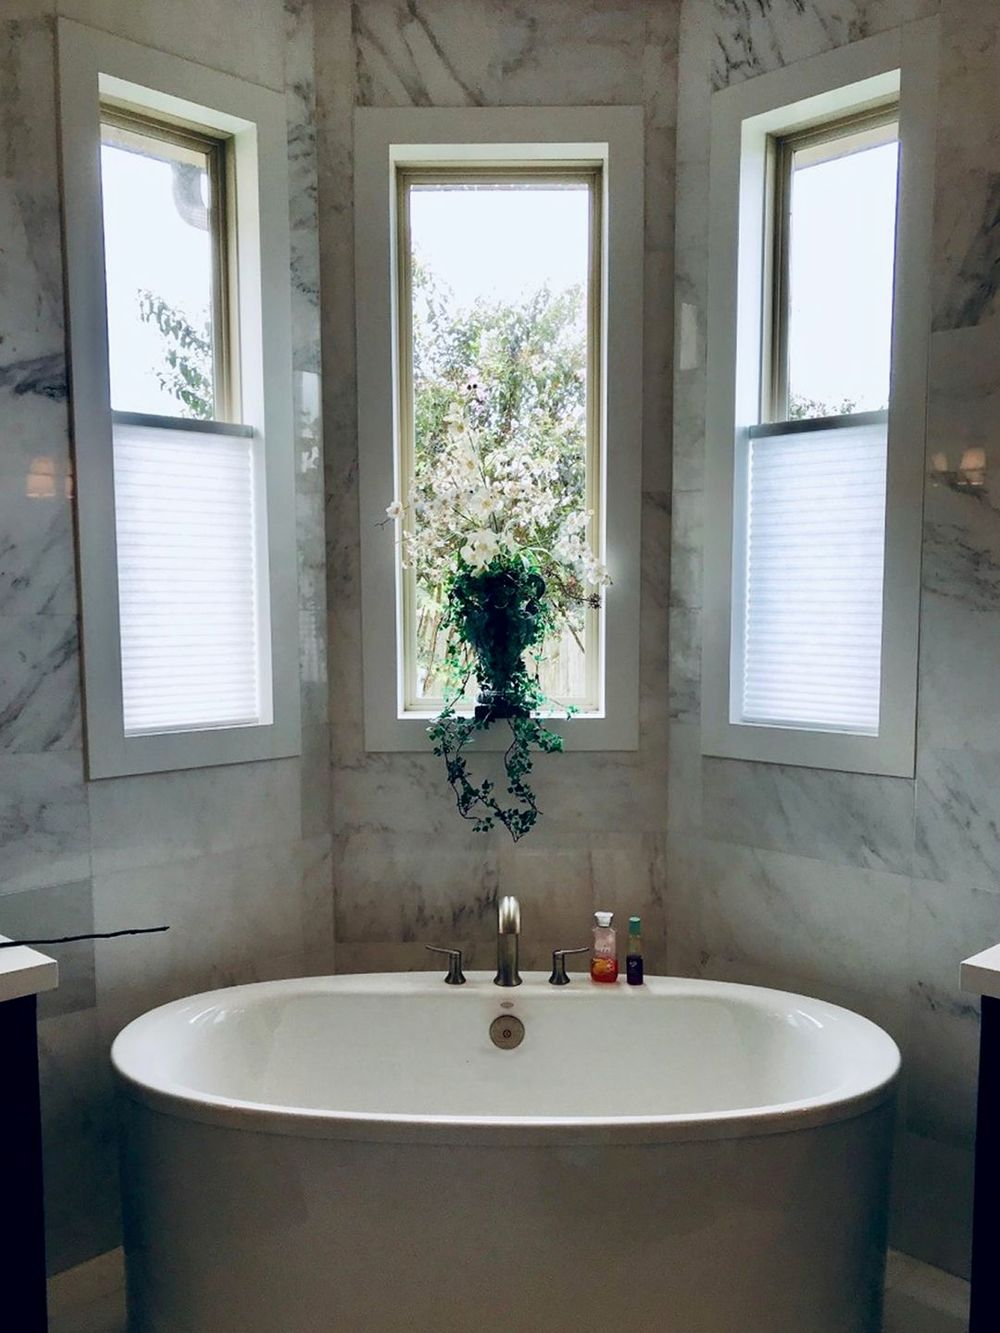 A focused look at this master bathroom's freestanding deep soaking tub surrounded by gorgeous marble tiles walls.